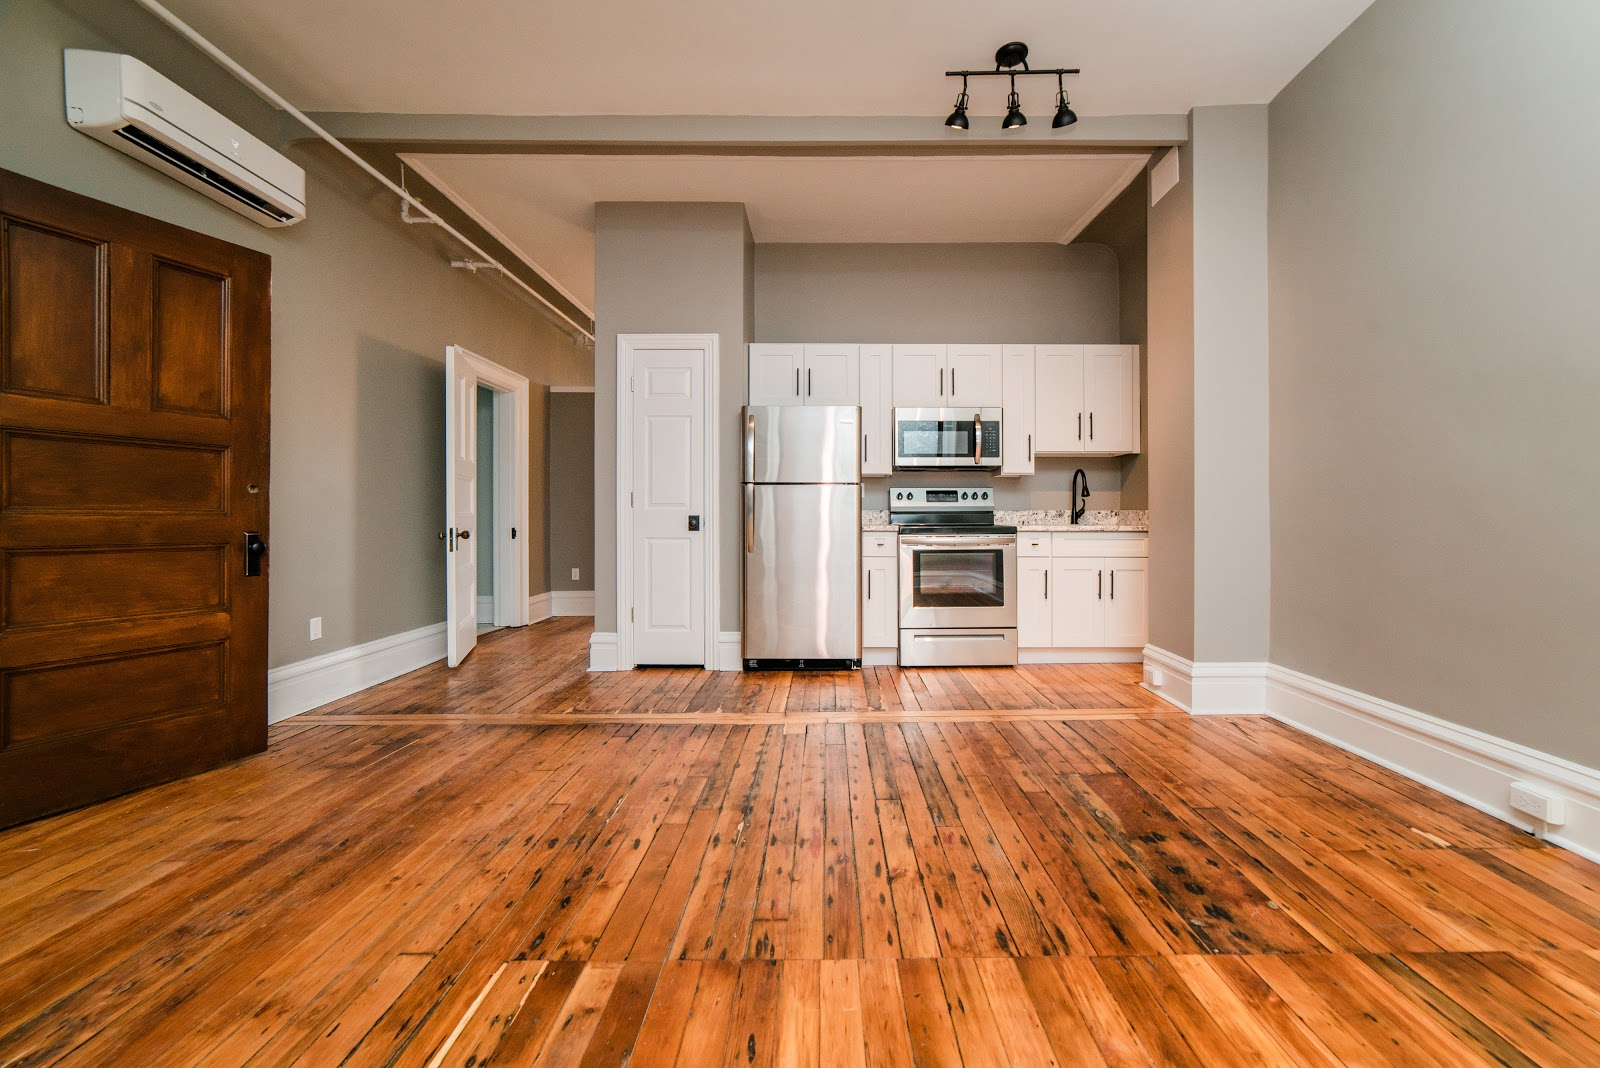 interior photo of kitchen space with hardwood floors